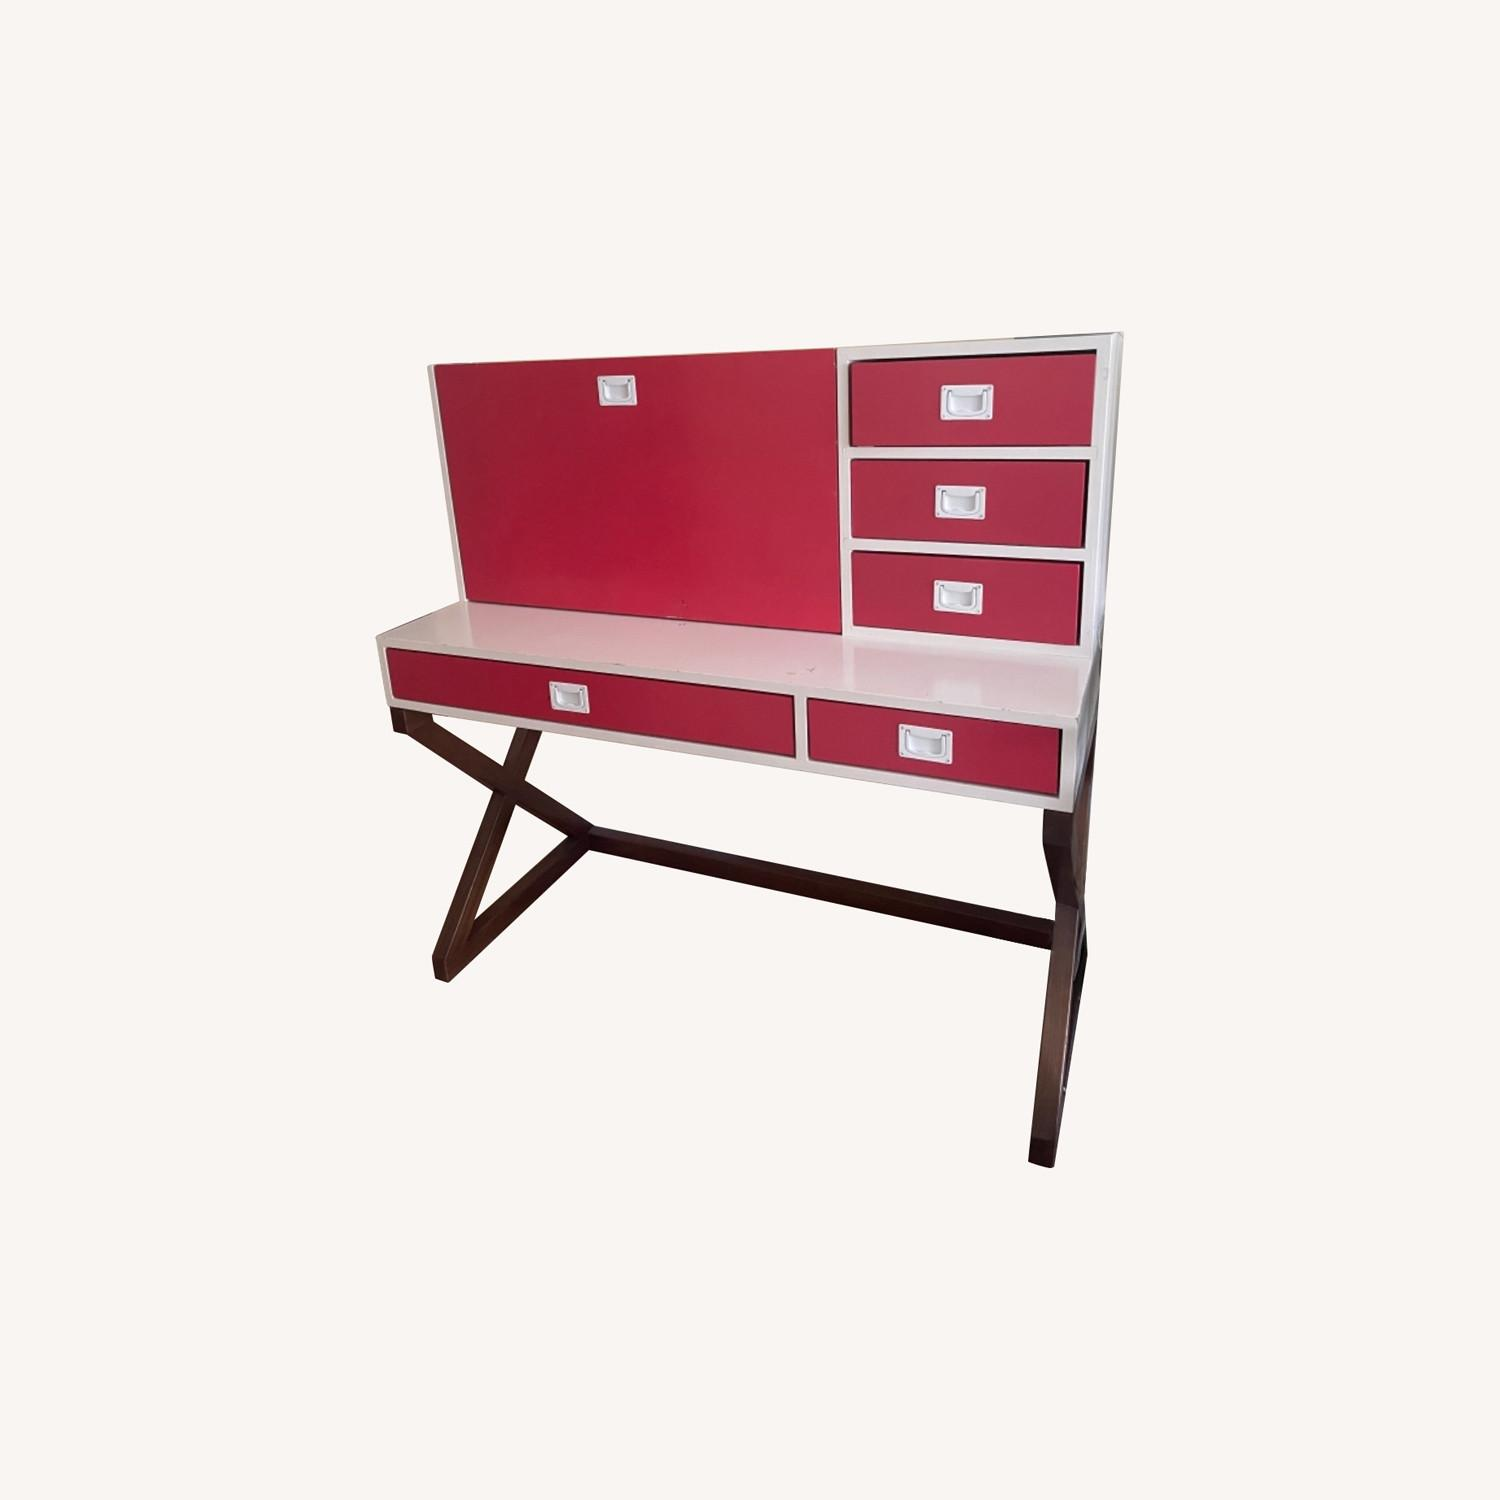 DucDuc Red and White Desk with Walnut Finish - image-0